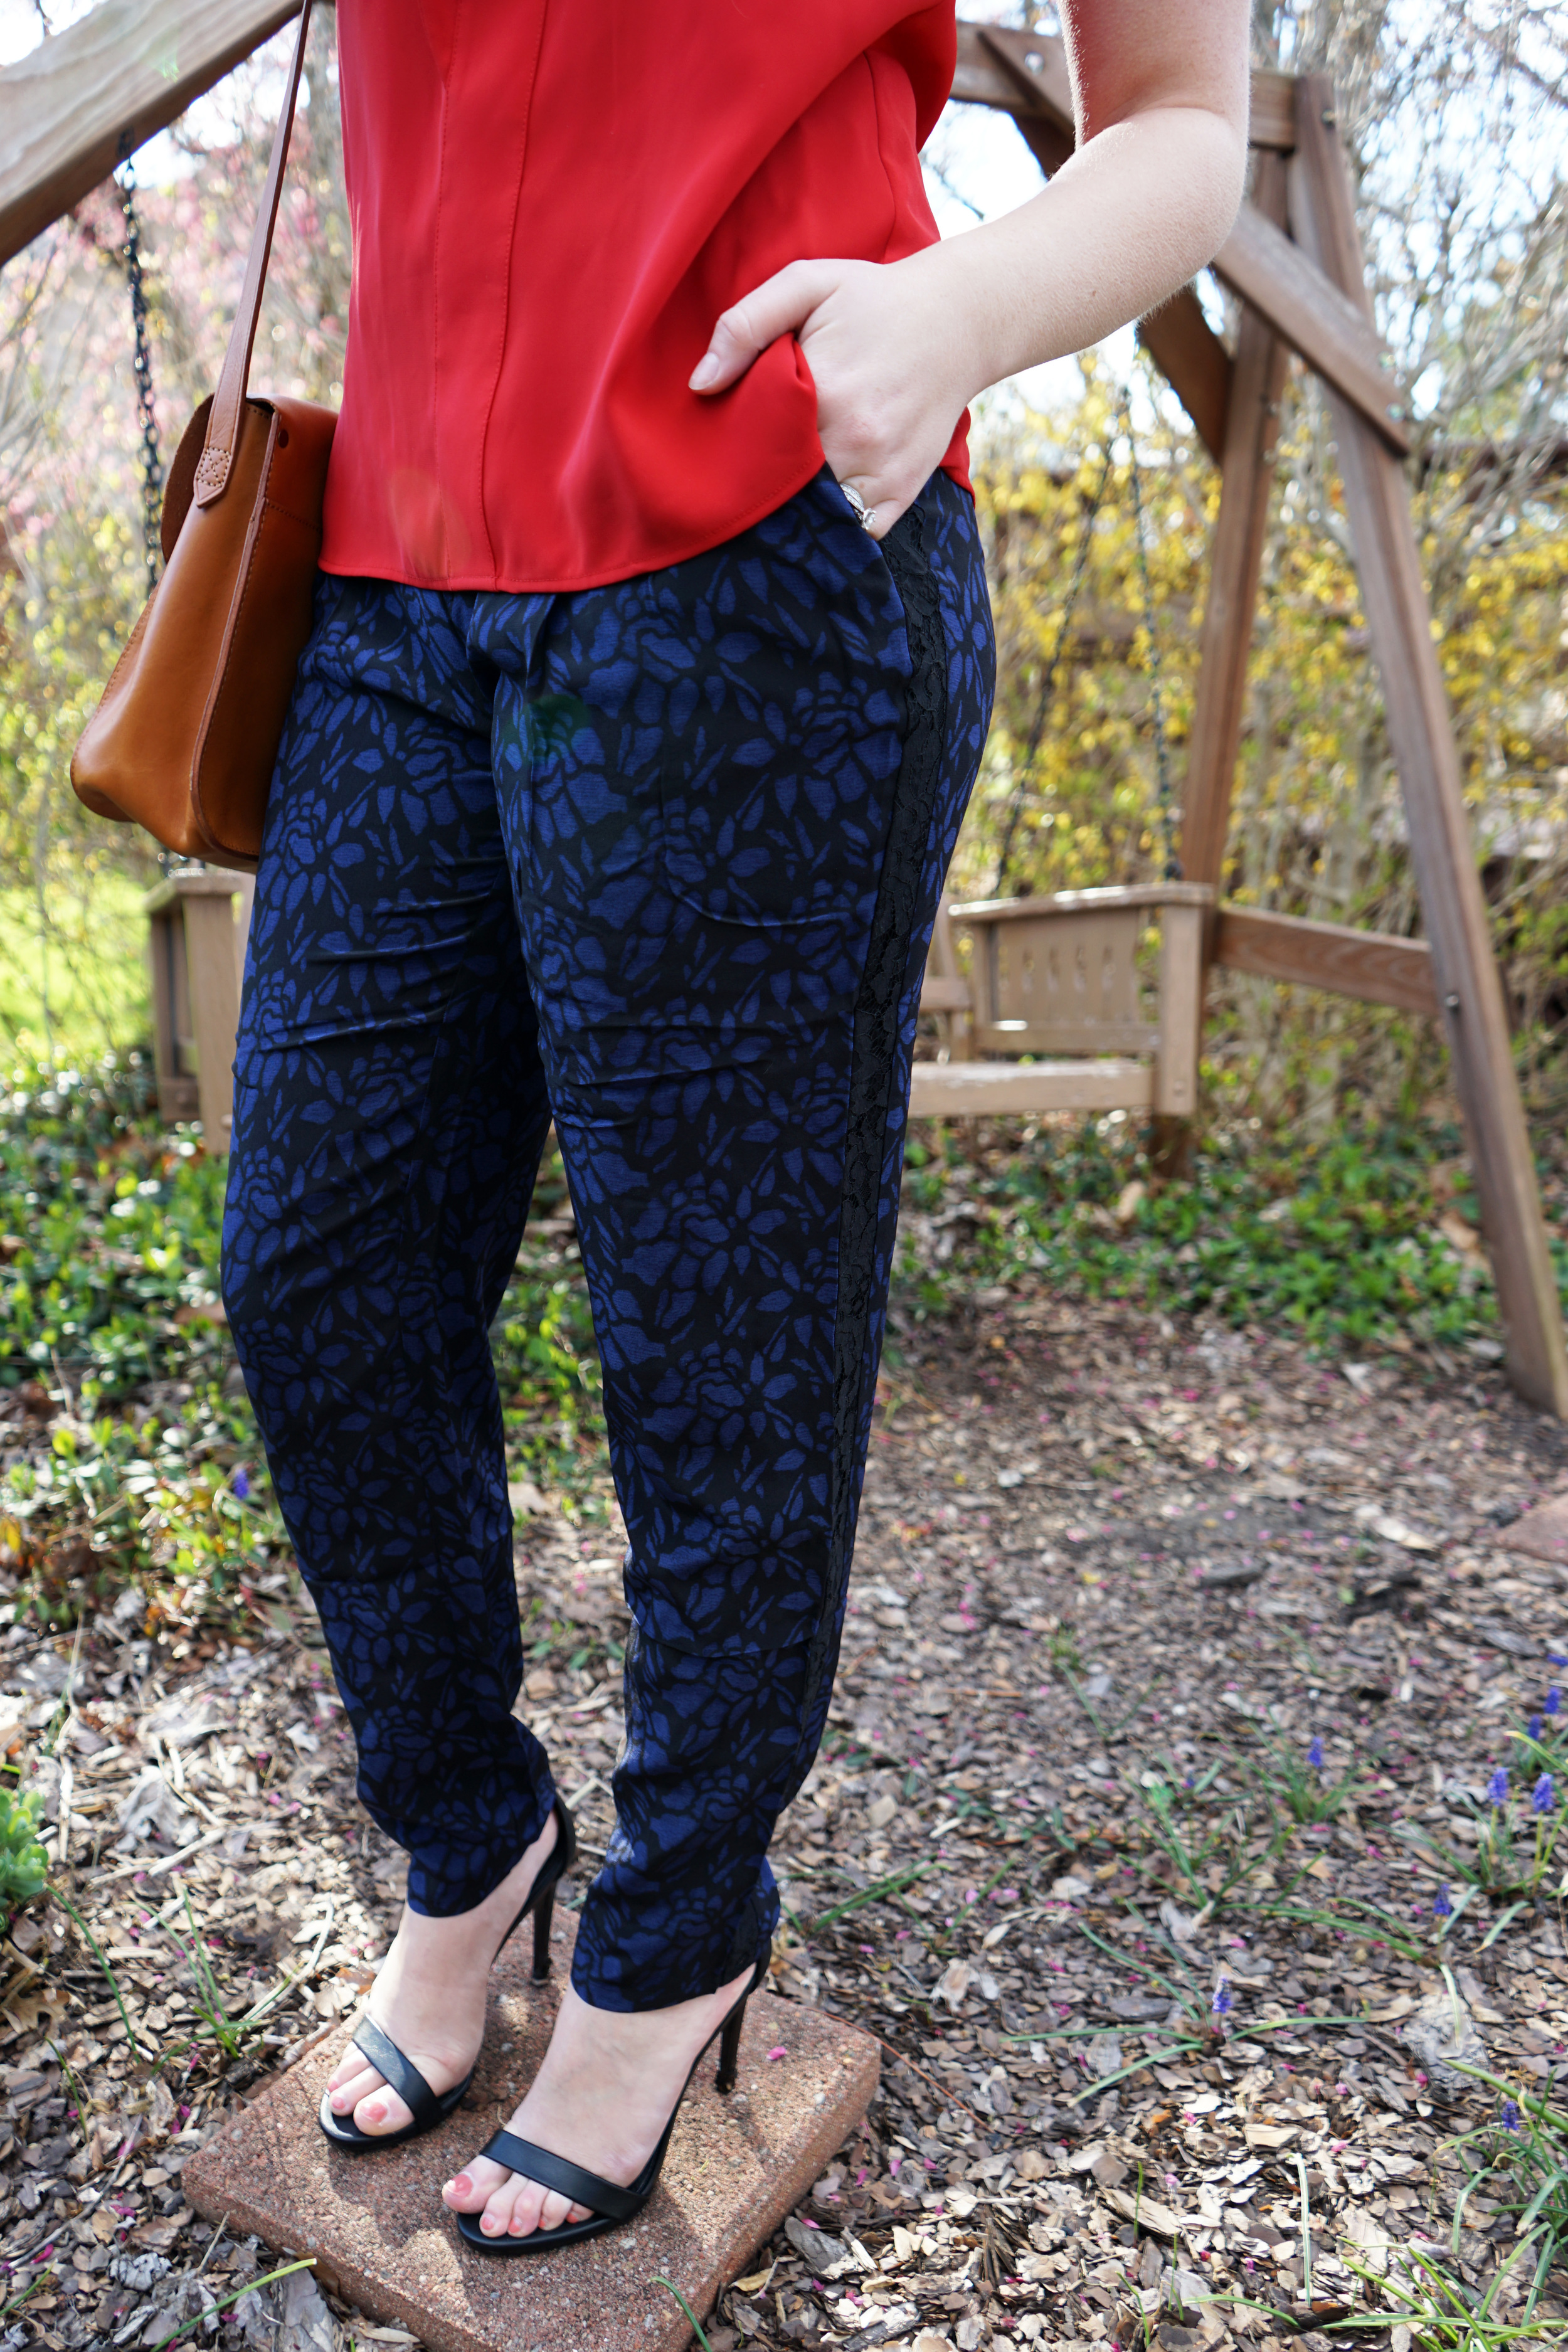 Joie Zelie Silk Pant Caviar, Zara ruffle blouse top, Steve Madden Stecy sandal, Nadri Starry Night multi hoop earrings, Madewell the watertower messanger crossbody purse - Maggie a la Mode